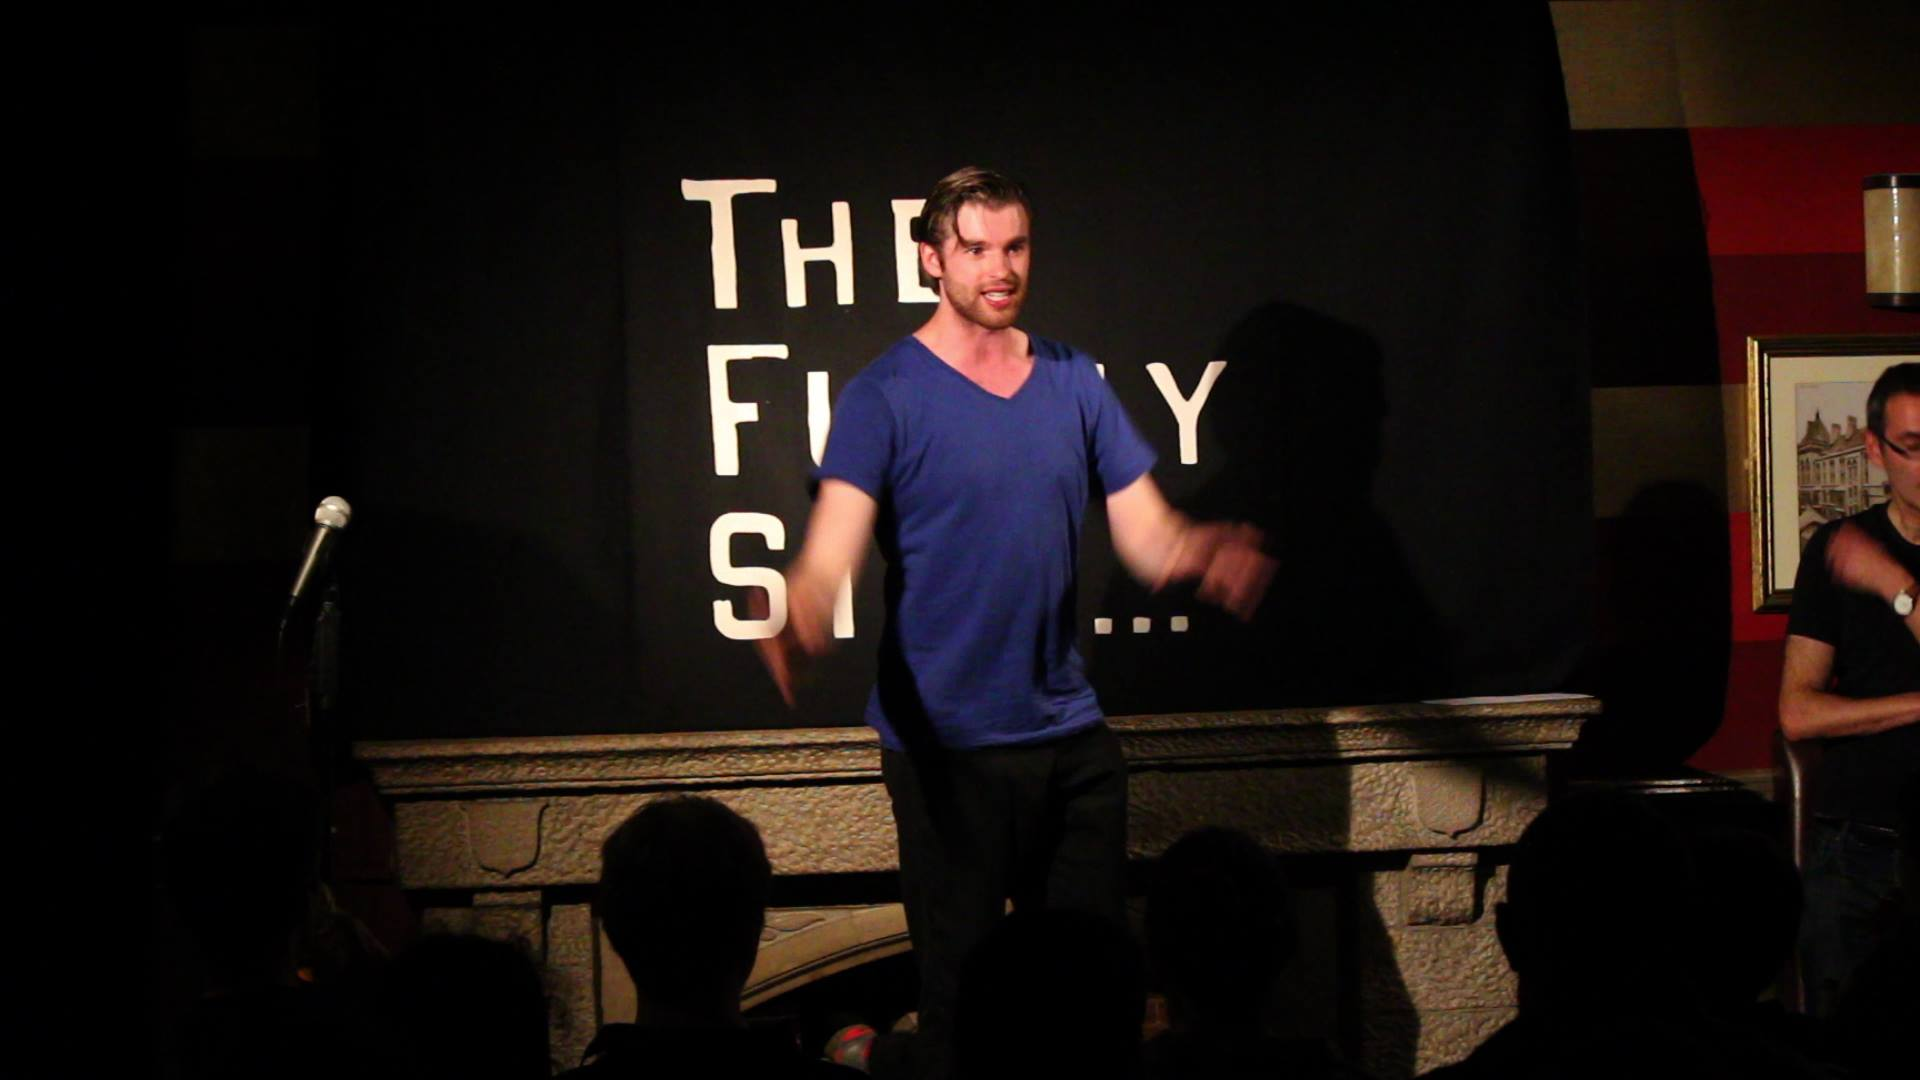 James at The Funny Side